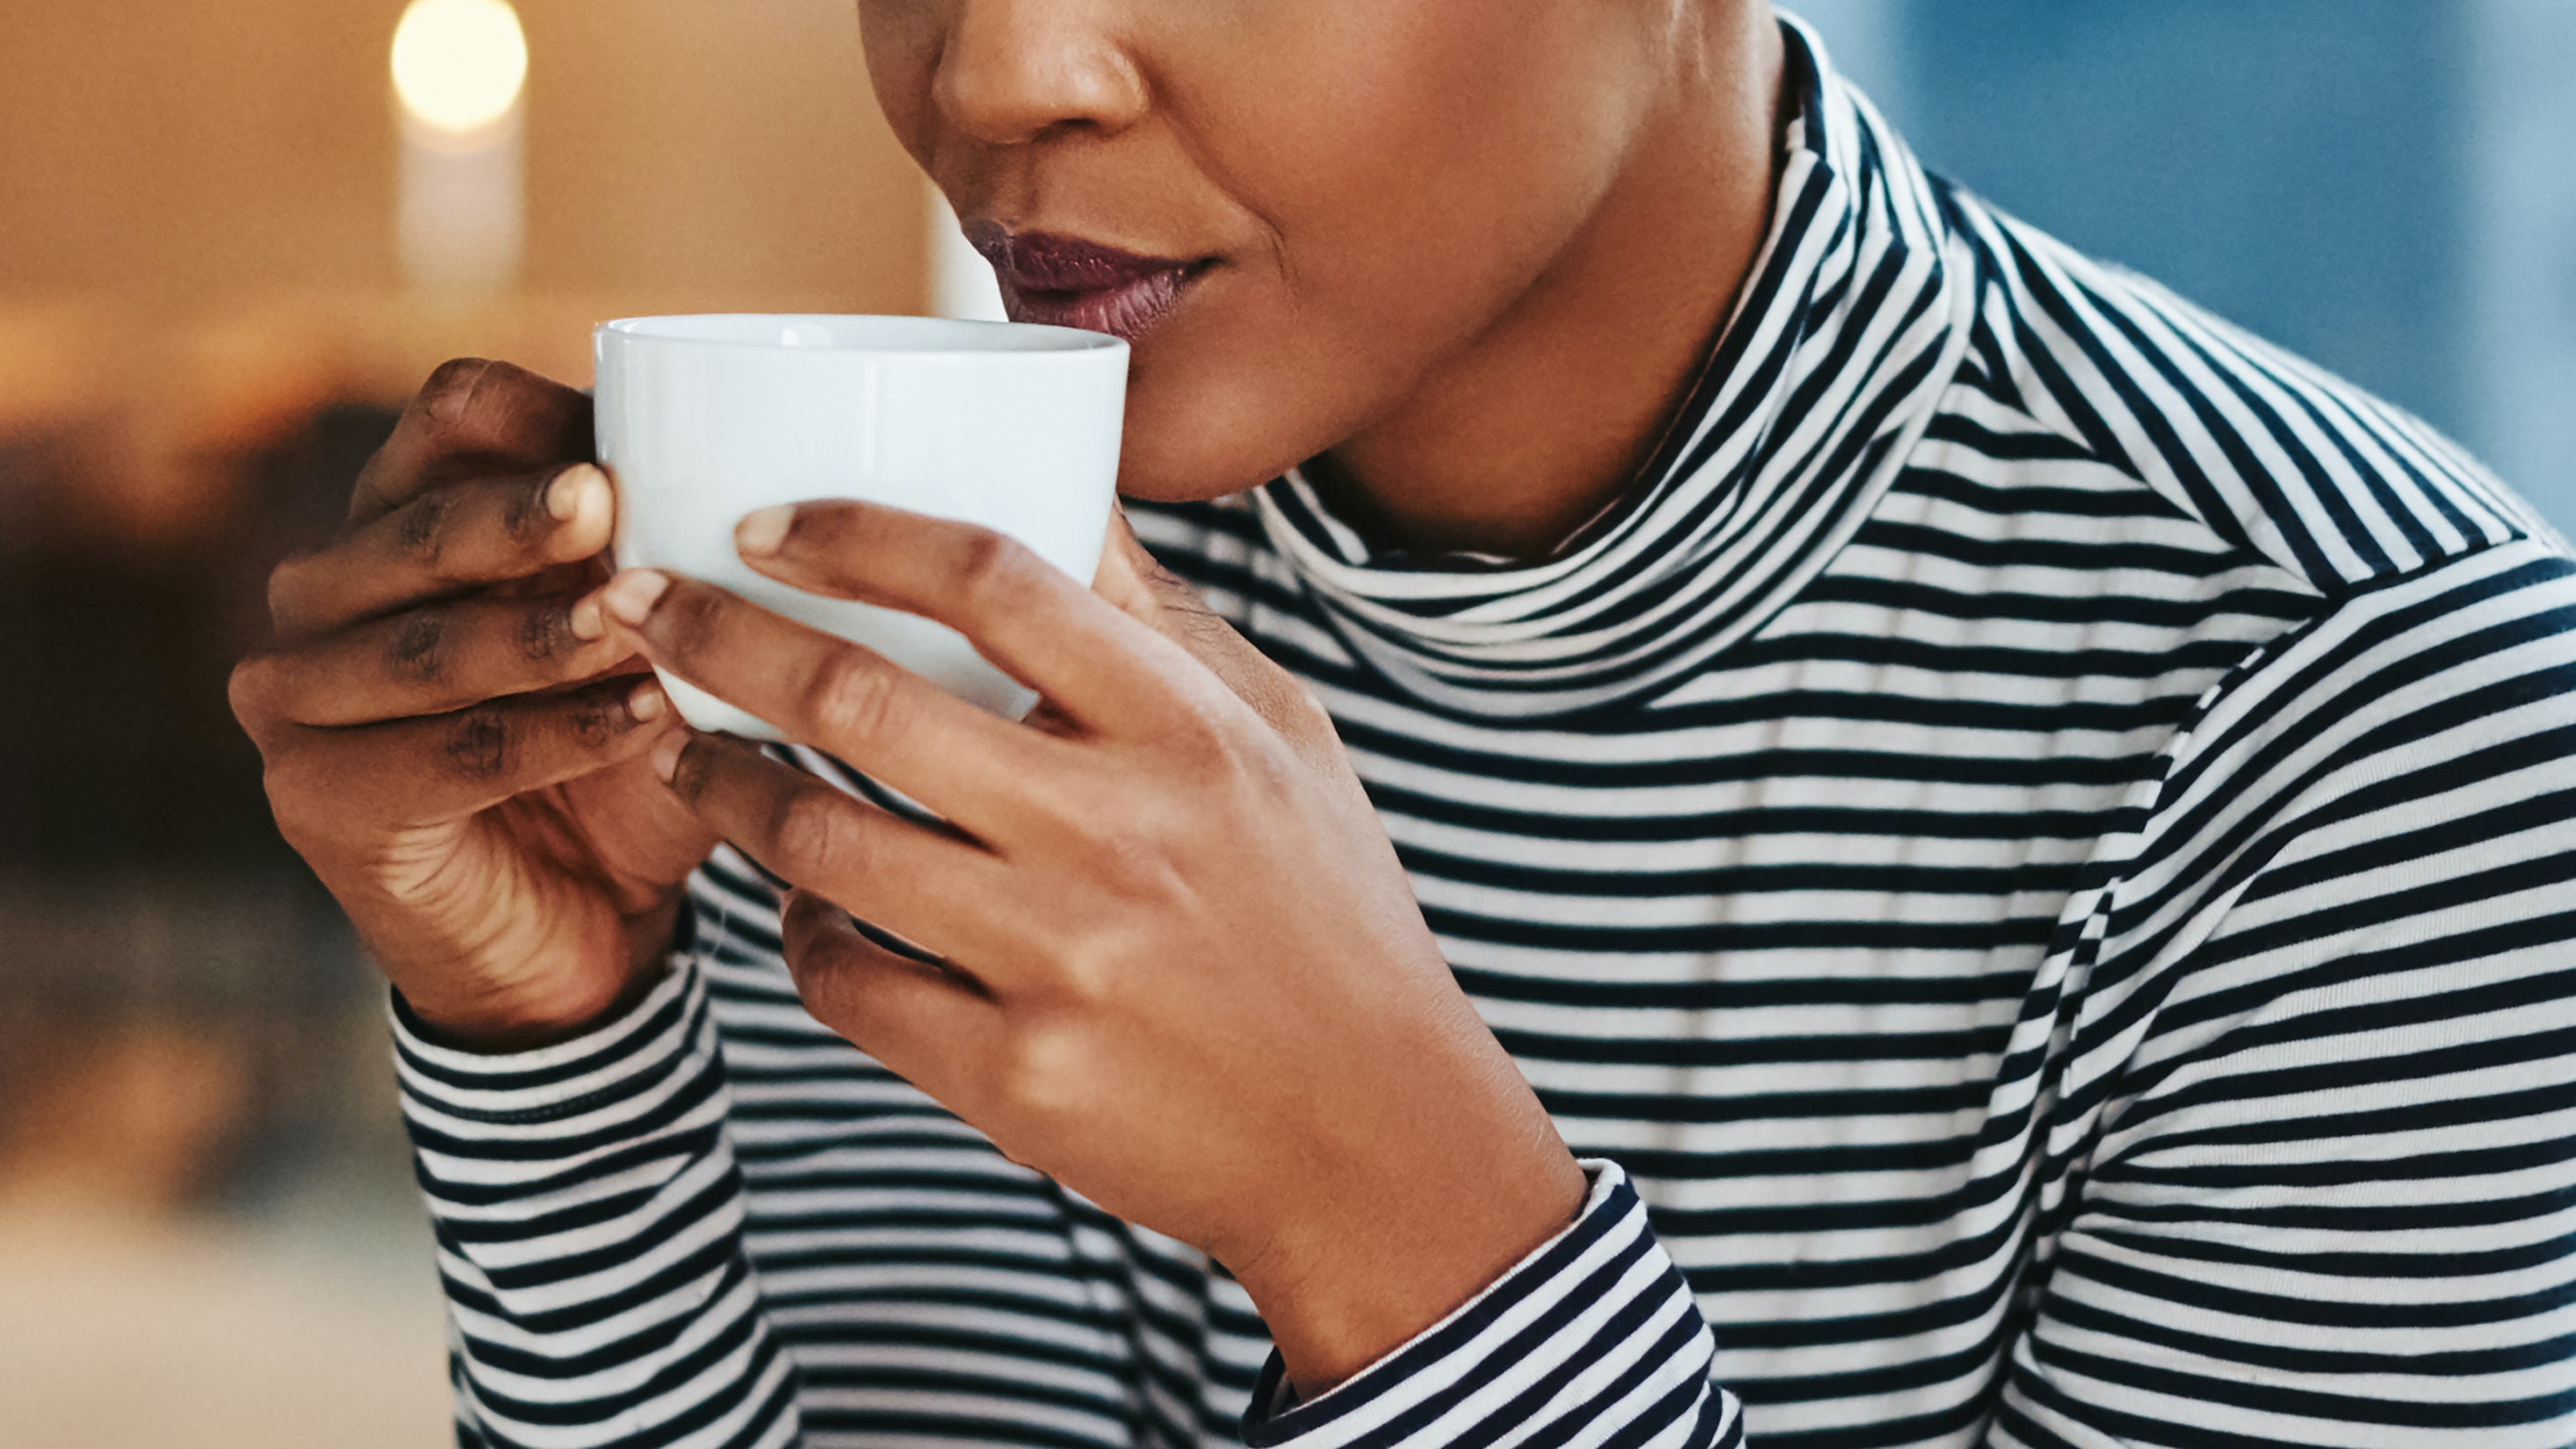 The Unexpected Correlation Between Coffee and Breakouts